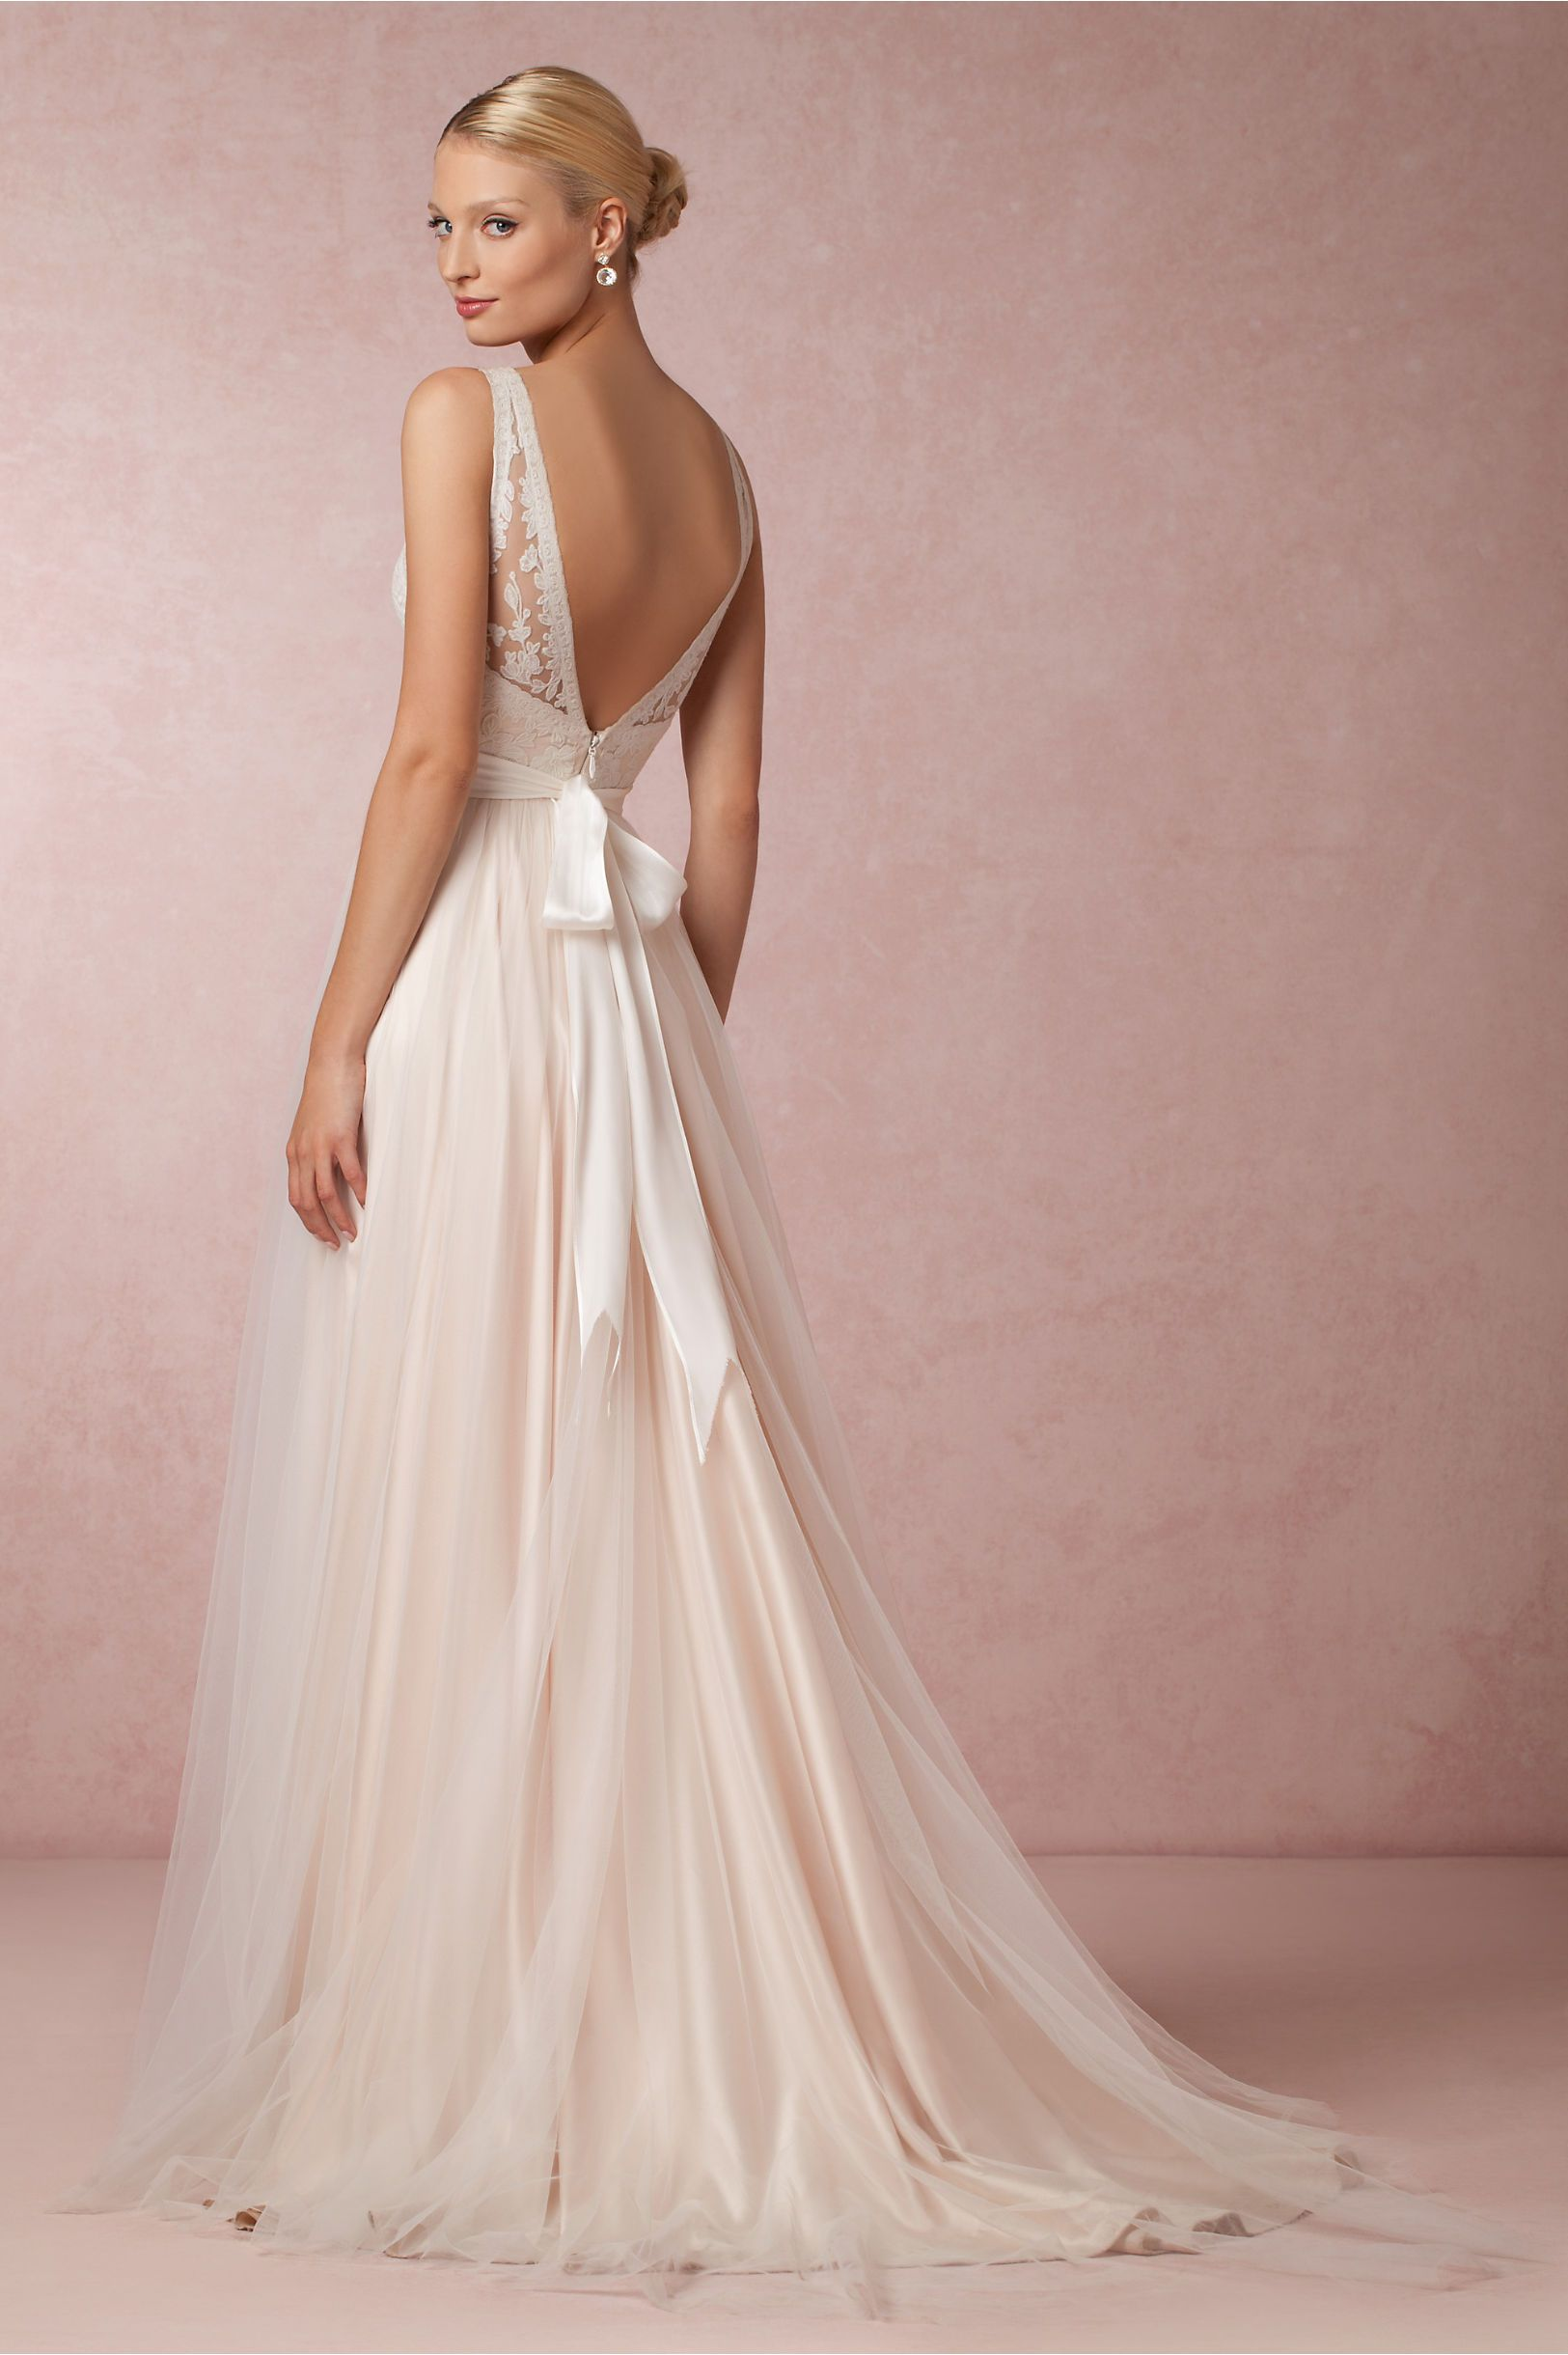 Tamsin Gown in Bride Wedding Dresses at BHLDN ...The back of this ...